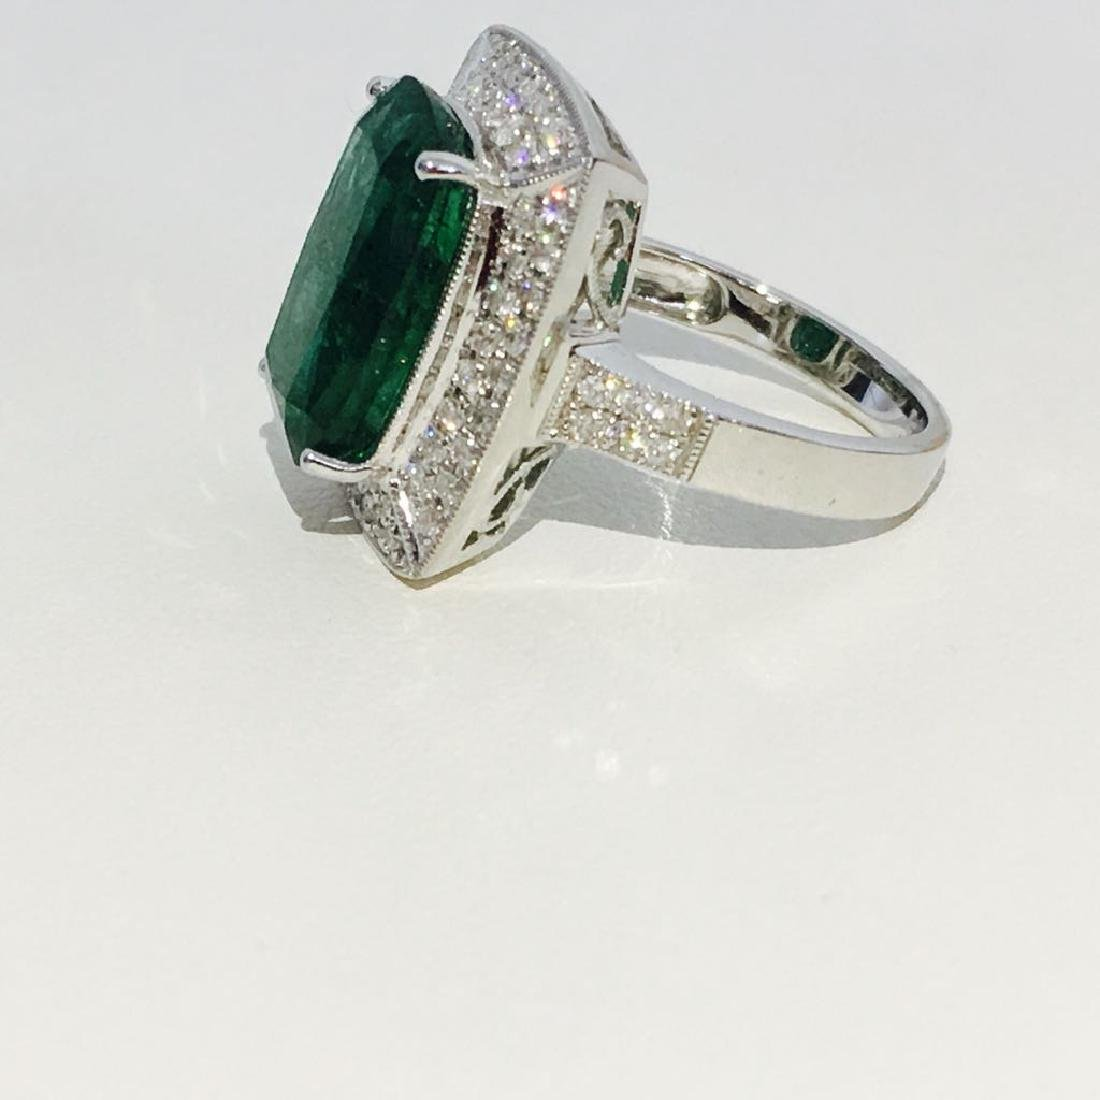 14K Gold, 100% natural 7.25 CT Emerald and Diamond Ring - 2